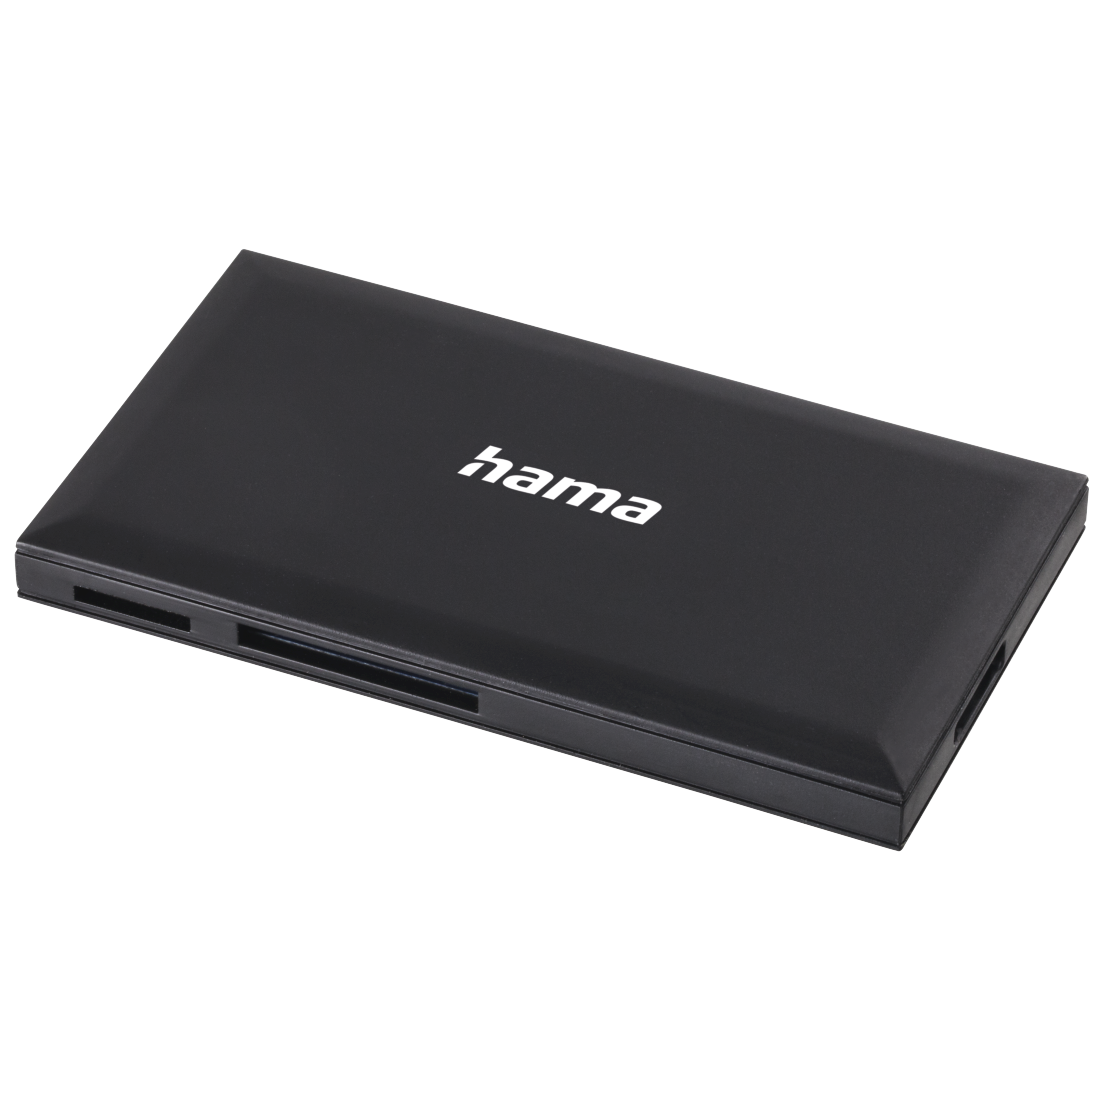 abx High-Res Image - Hama, USB 3.0 Multi-Card Reader, SD/microSD/CF/MS, black